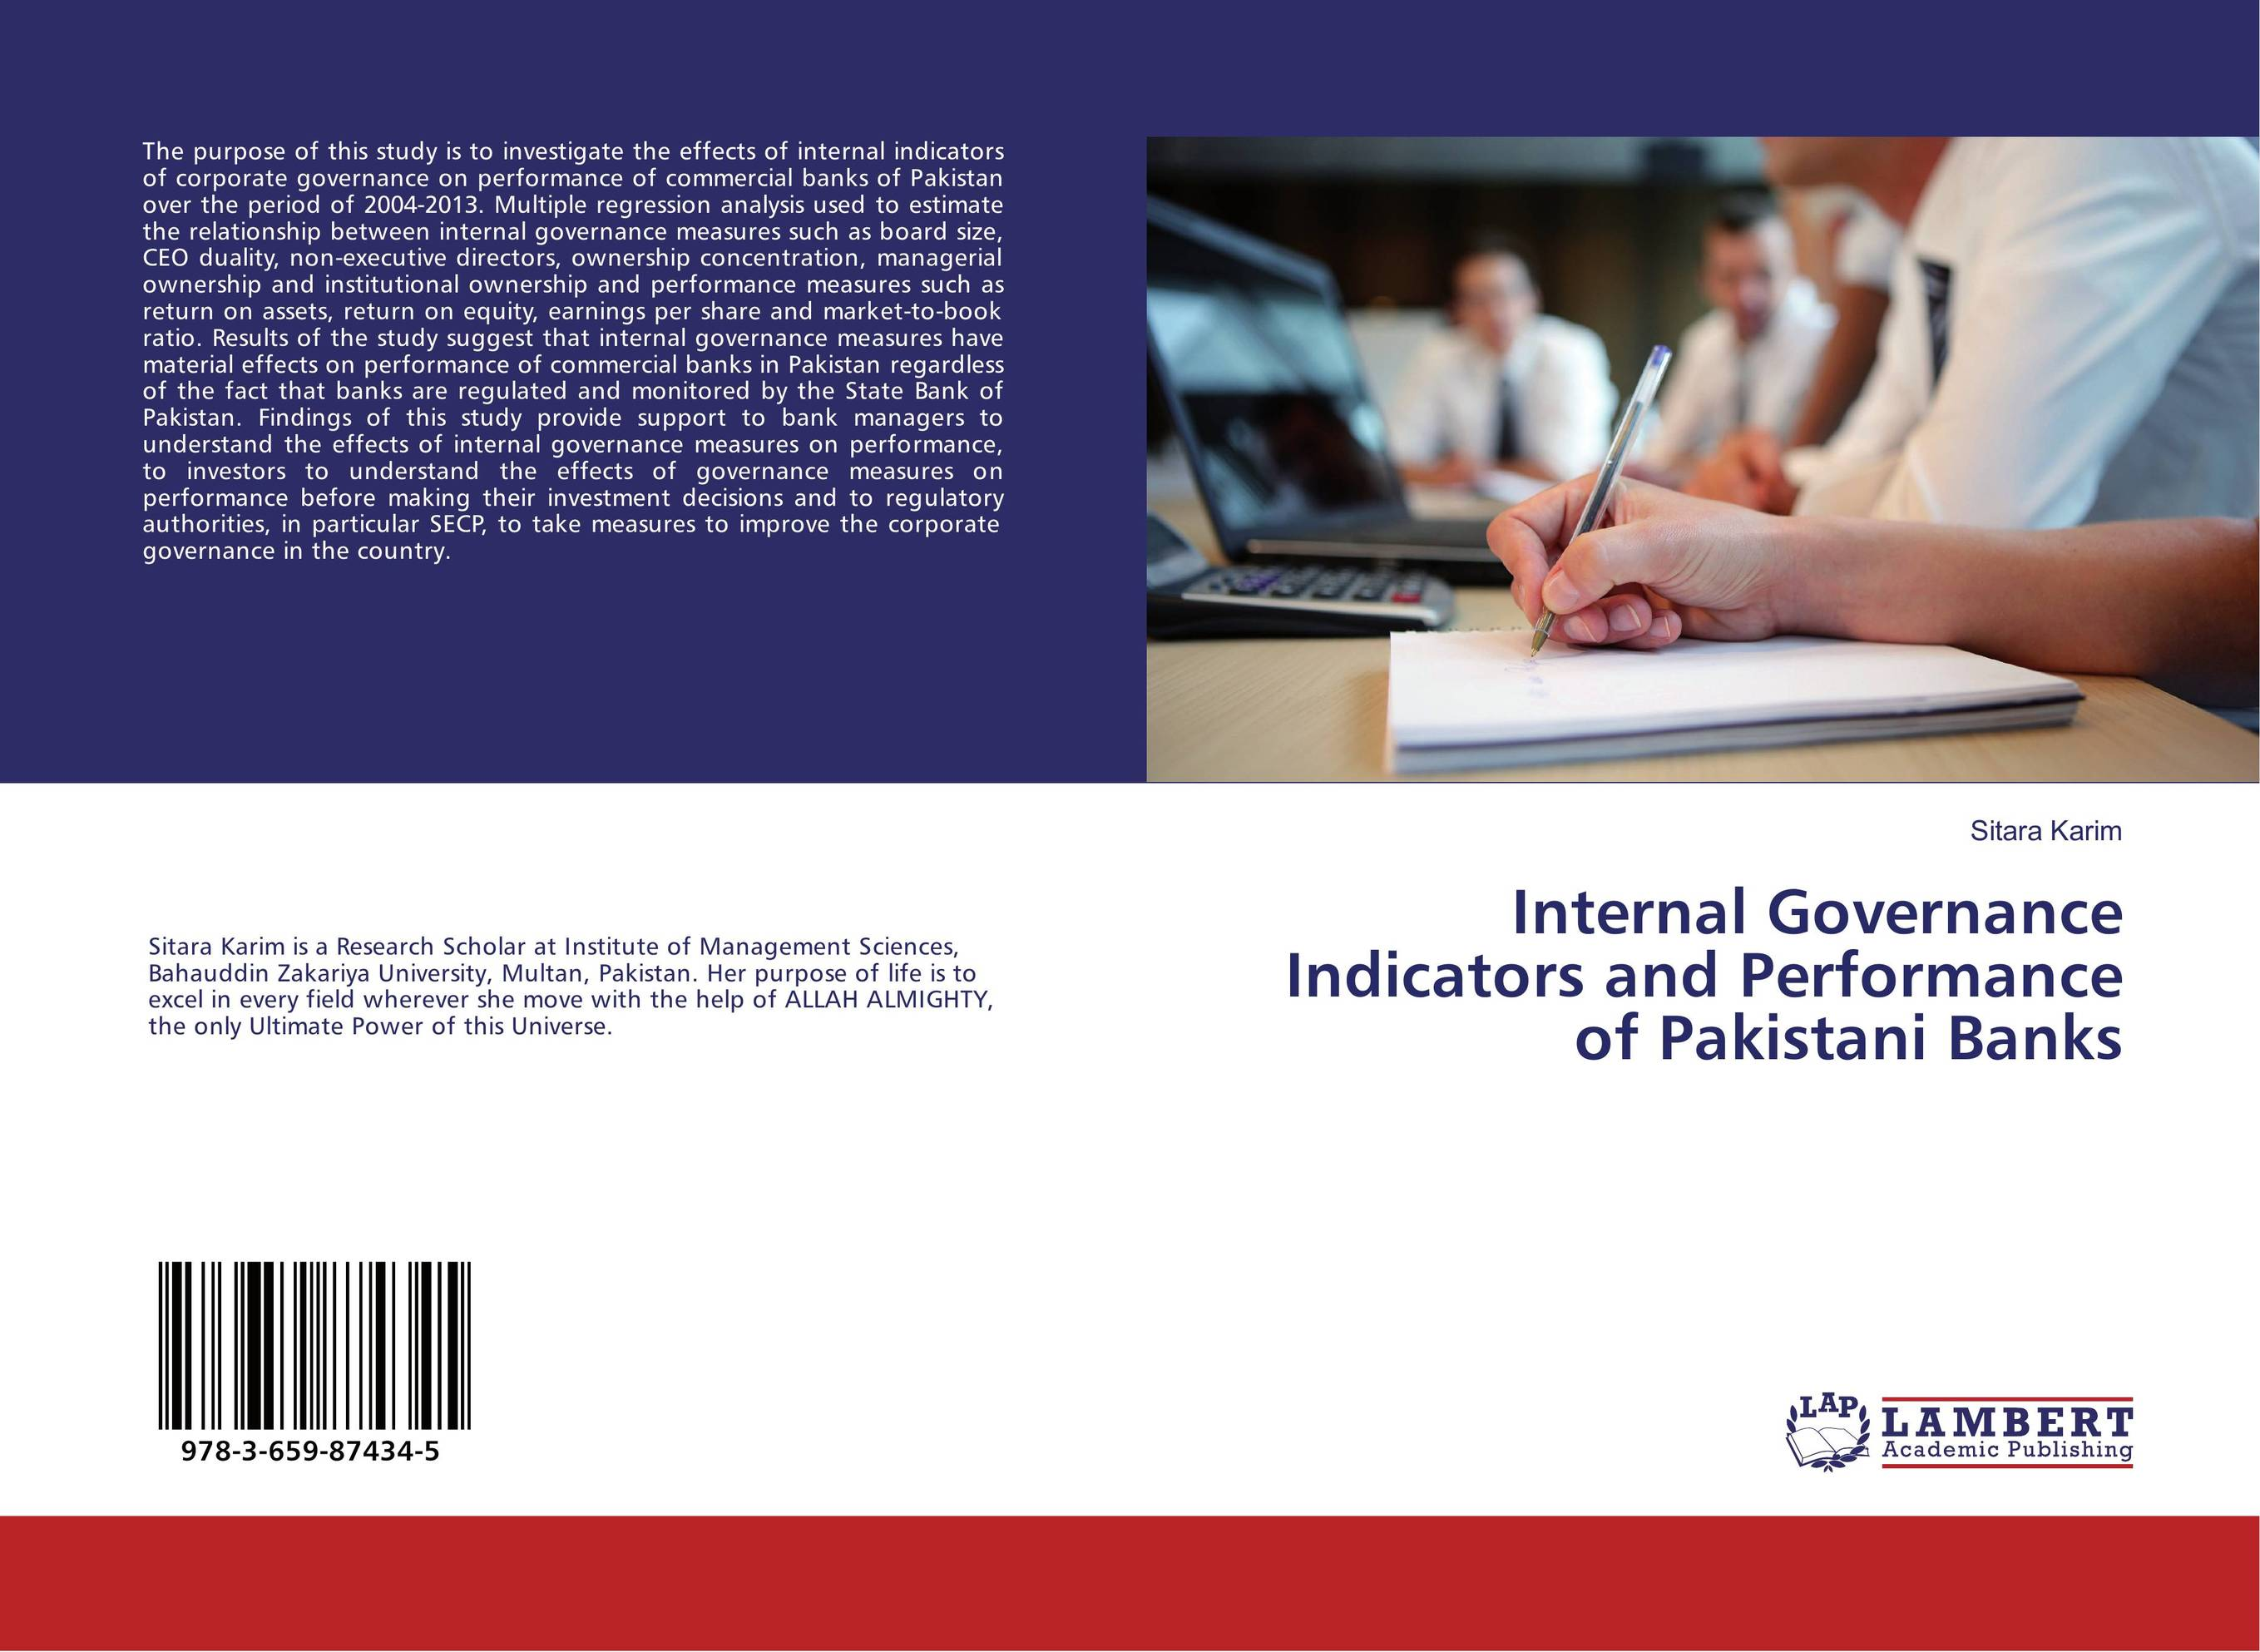 Internal Governance Indicators and Performance of Pakistani Banks david parmenter key performance indicators